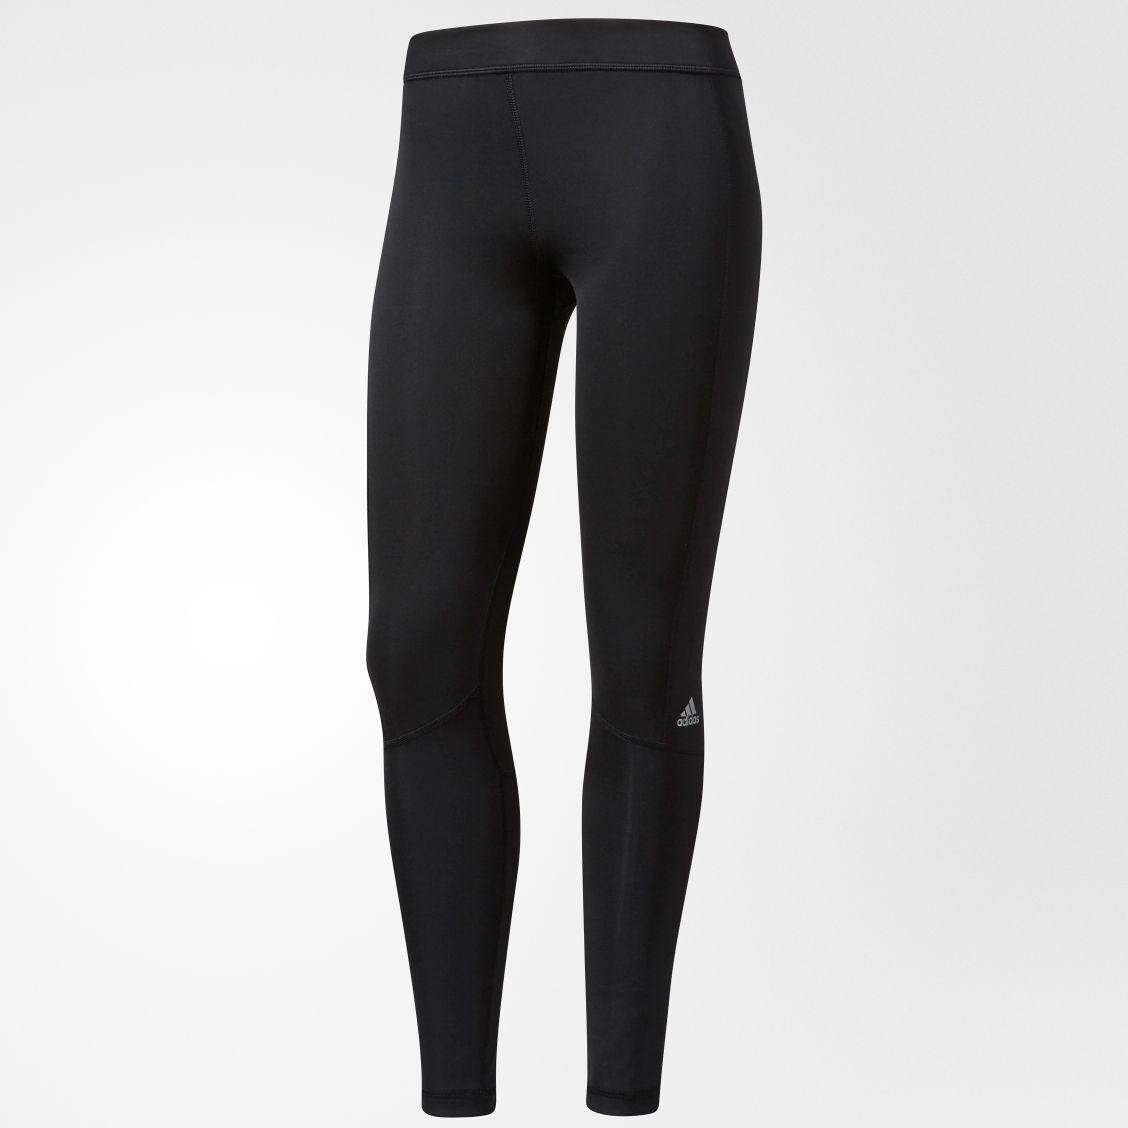 54aab6053c935a Best womens' sportswear - We test out fitness tops and leggings